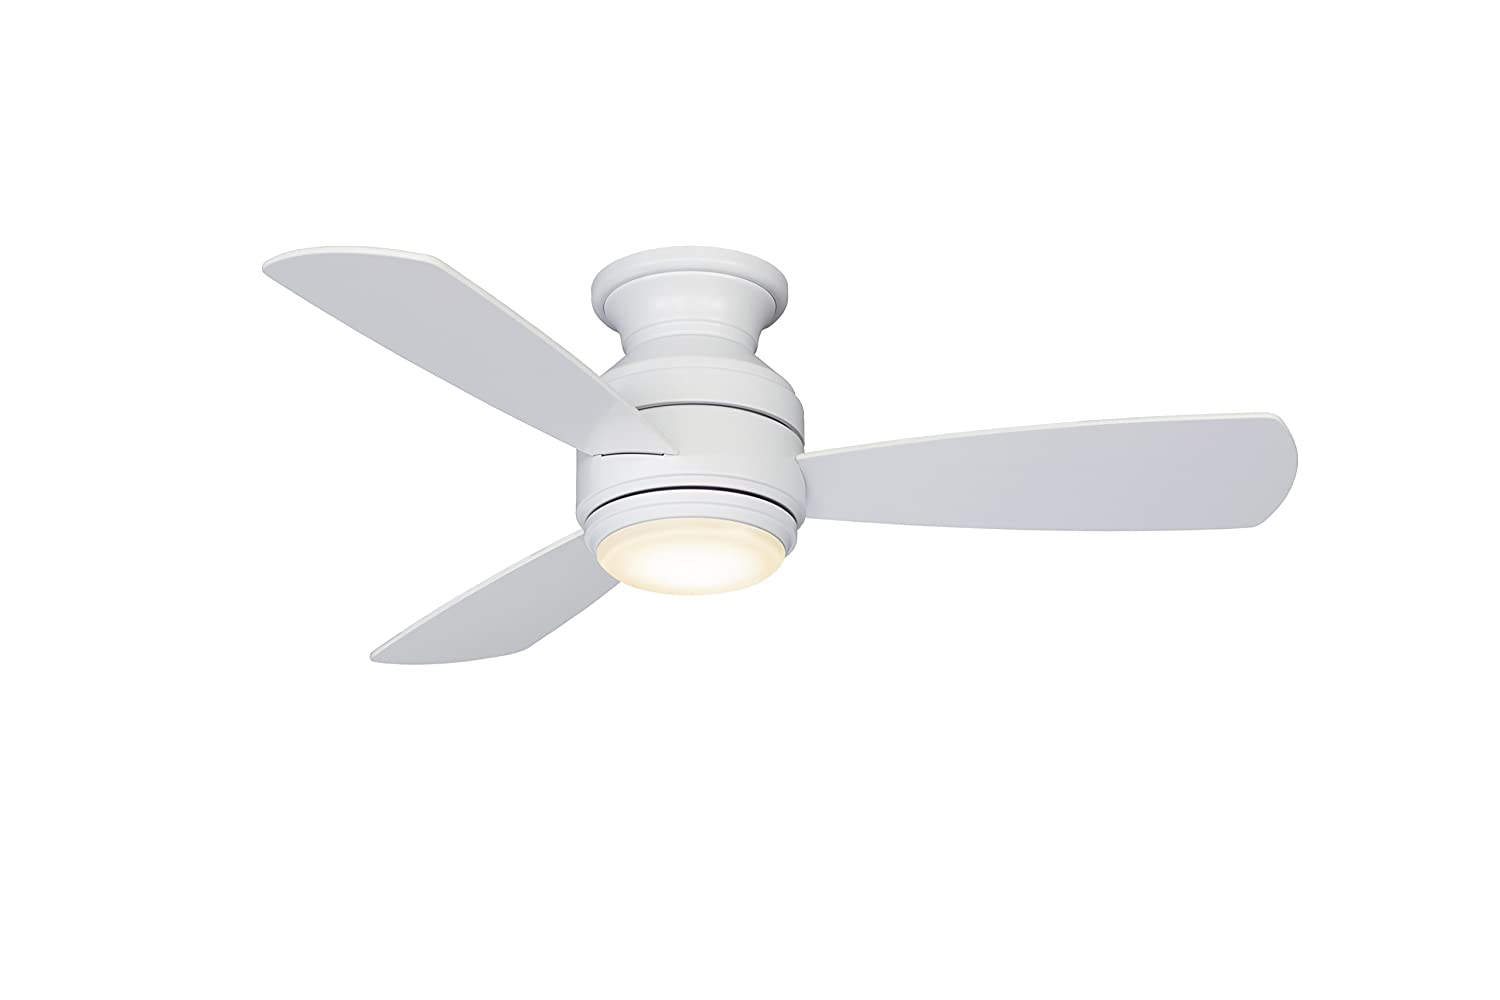 Fanimation Studio Collection LP8347BLMW Level Ceiling Fan with LED Light Kit, 44 Inch, Matte White